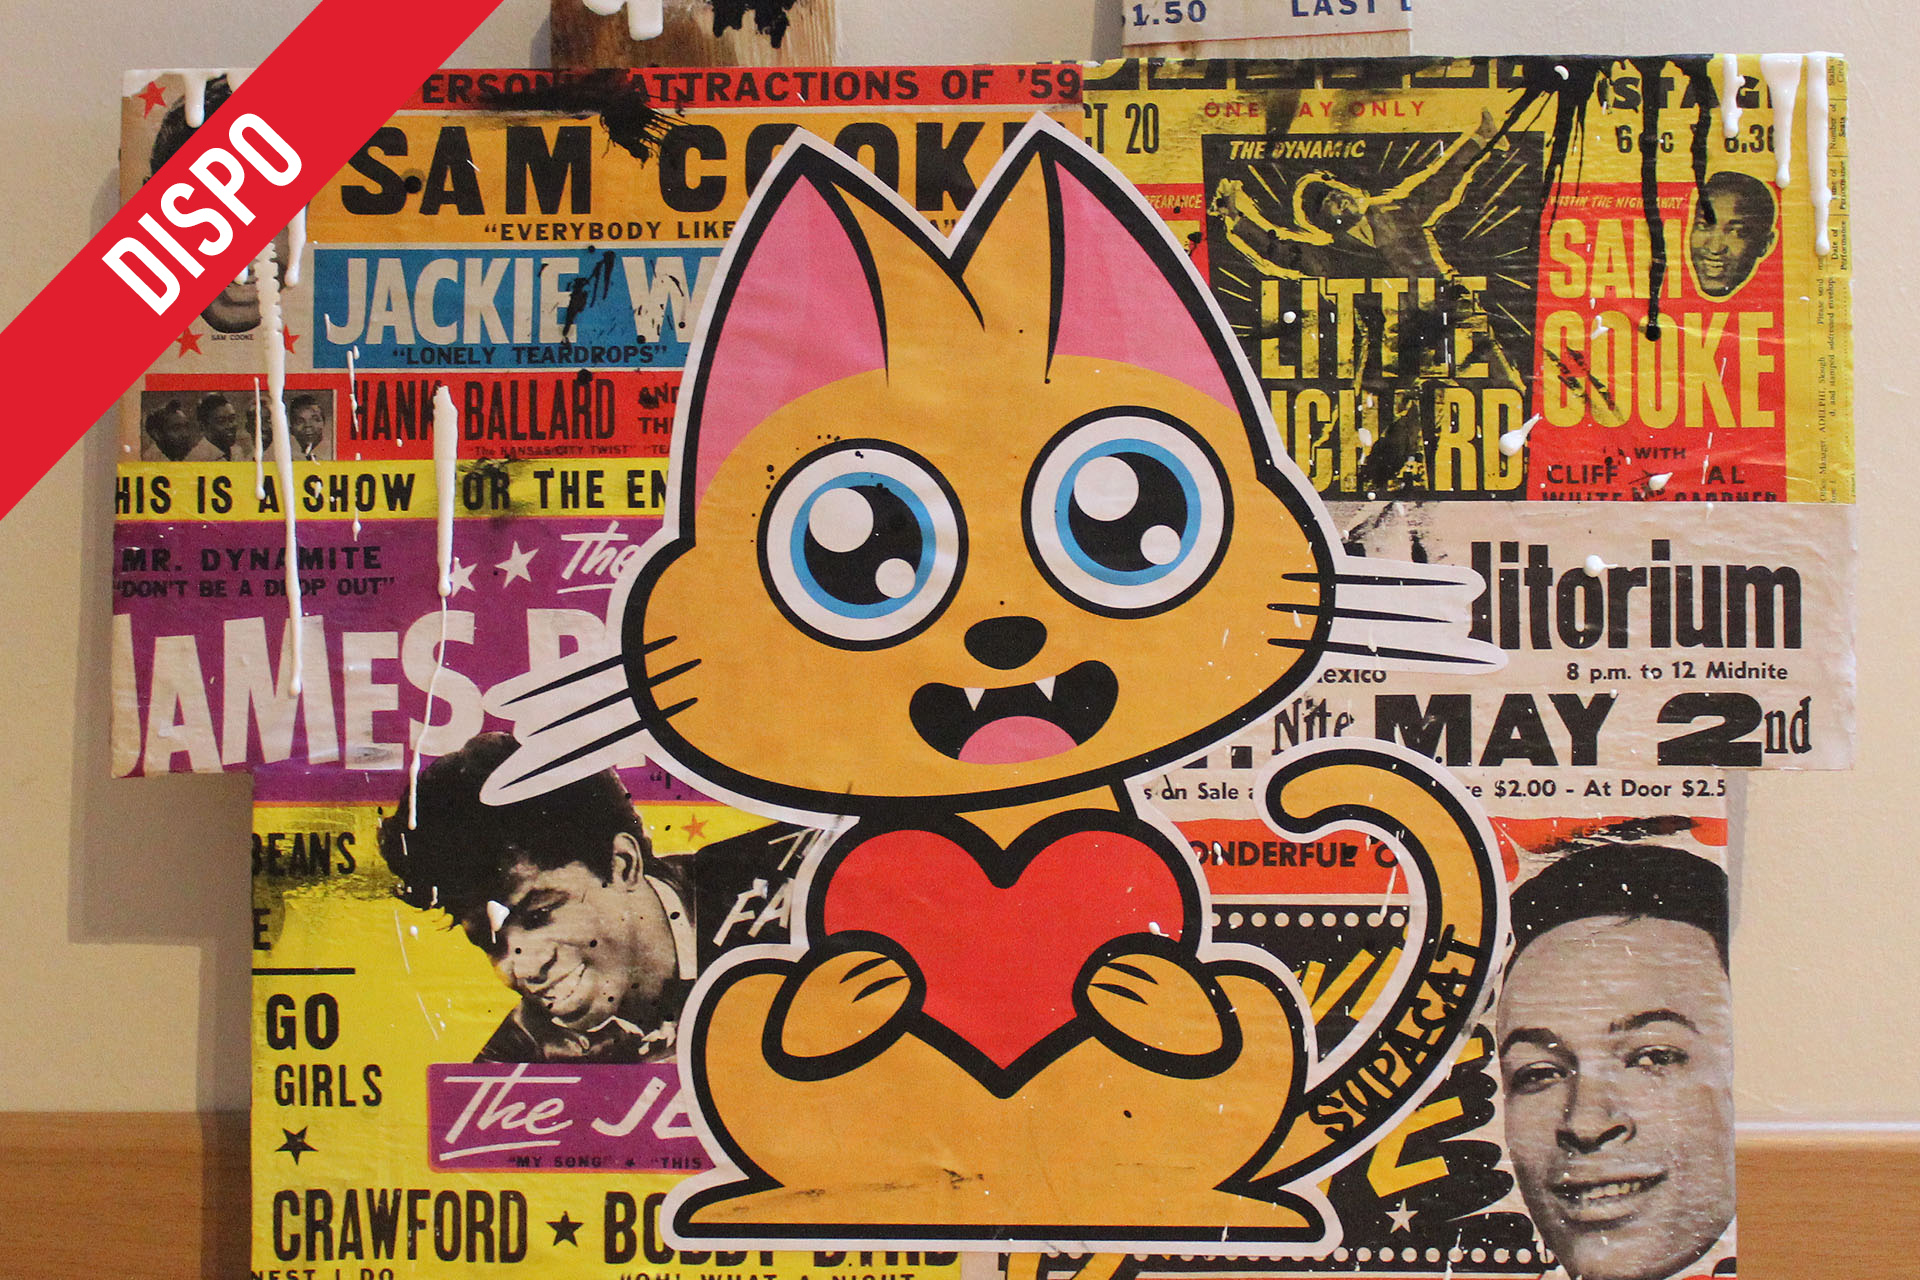 Supacat Street Art Strasbourg - The Love Cat feat. James, Marvin & Sam